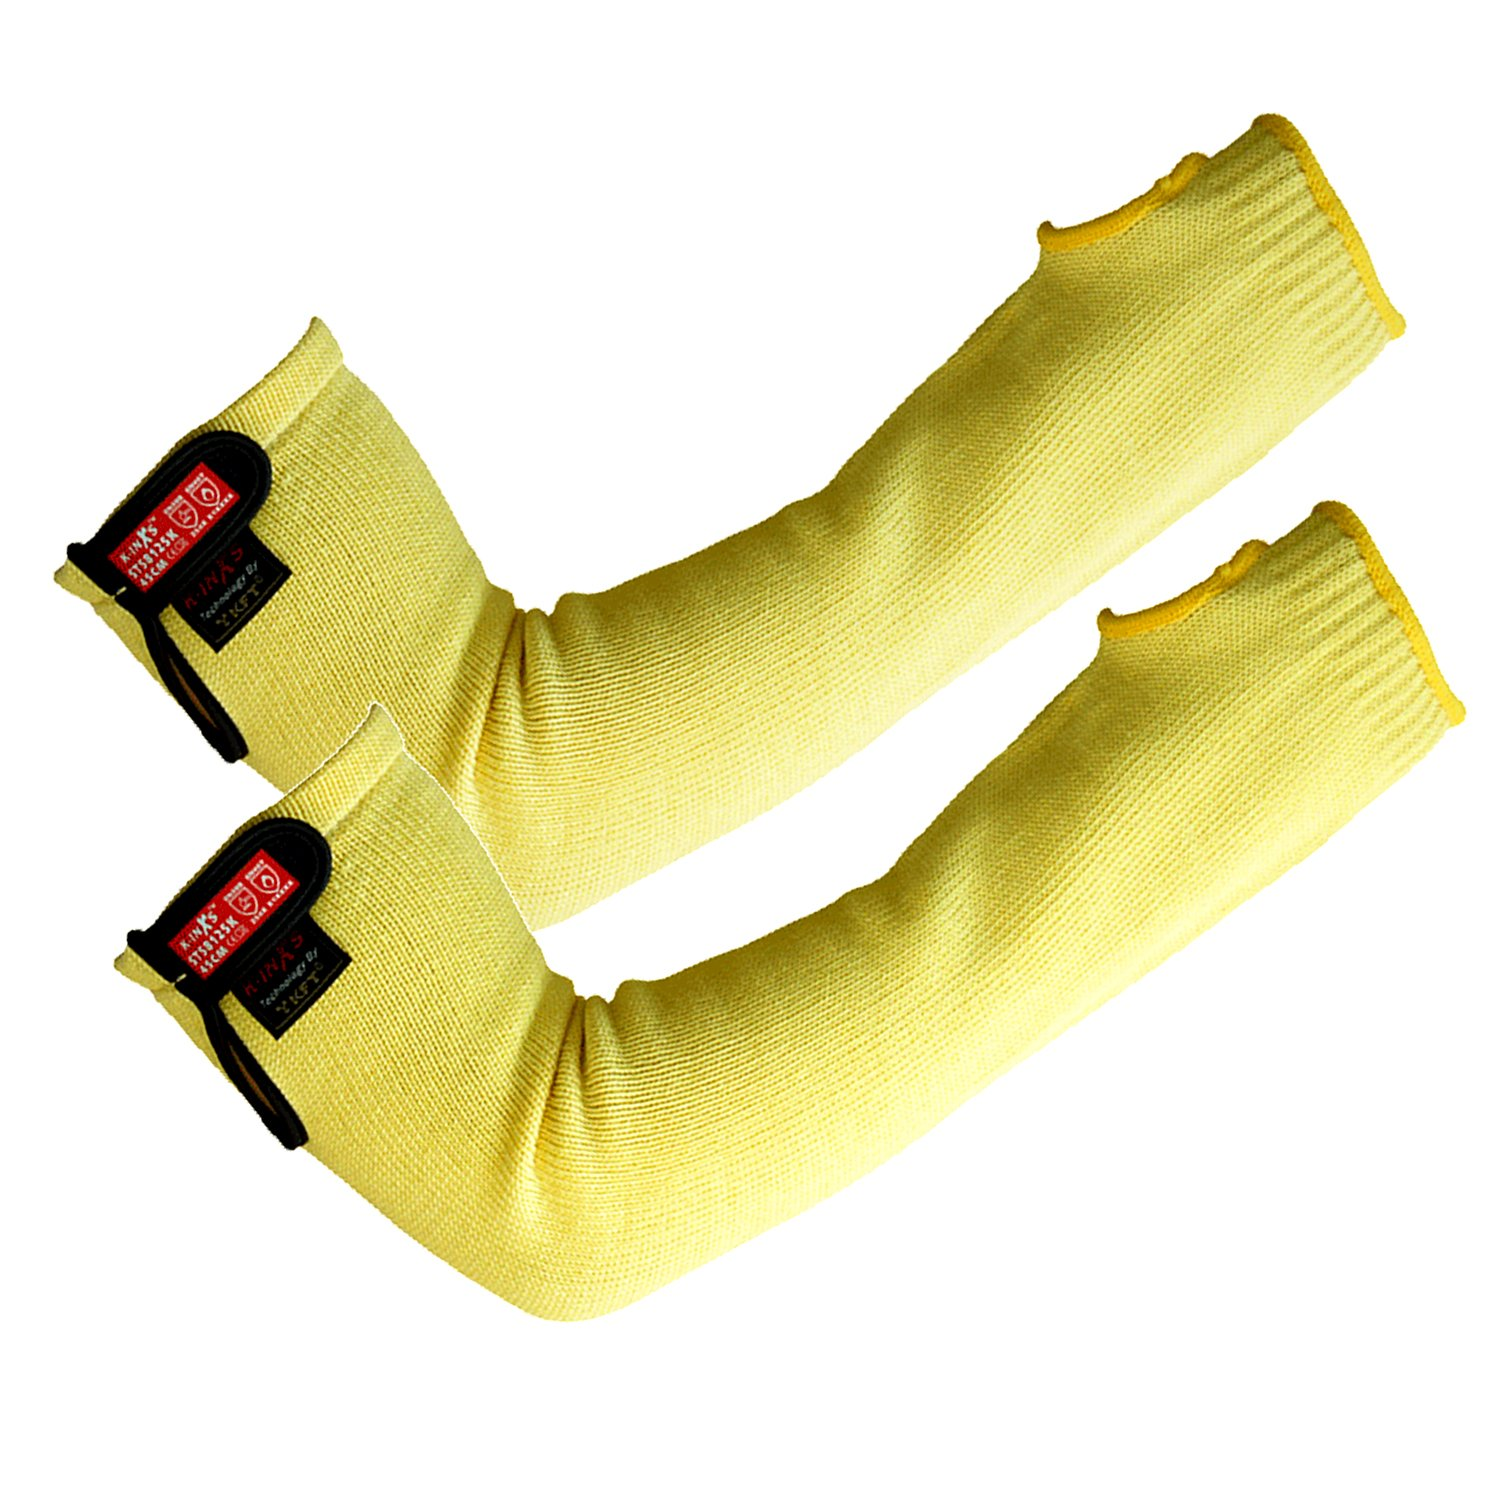 SAFETY-INXS Cut Resistant Sleeves Level 5 With Thumb Hole, Arm Protection Sleeves for Thin Skin, Safety Protective Arm Sleeves/Cut and Heat Resistant, Slash Resistant Sleeve 18 inch Long Yellow 1 Pa